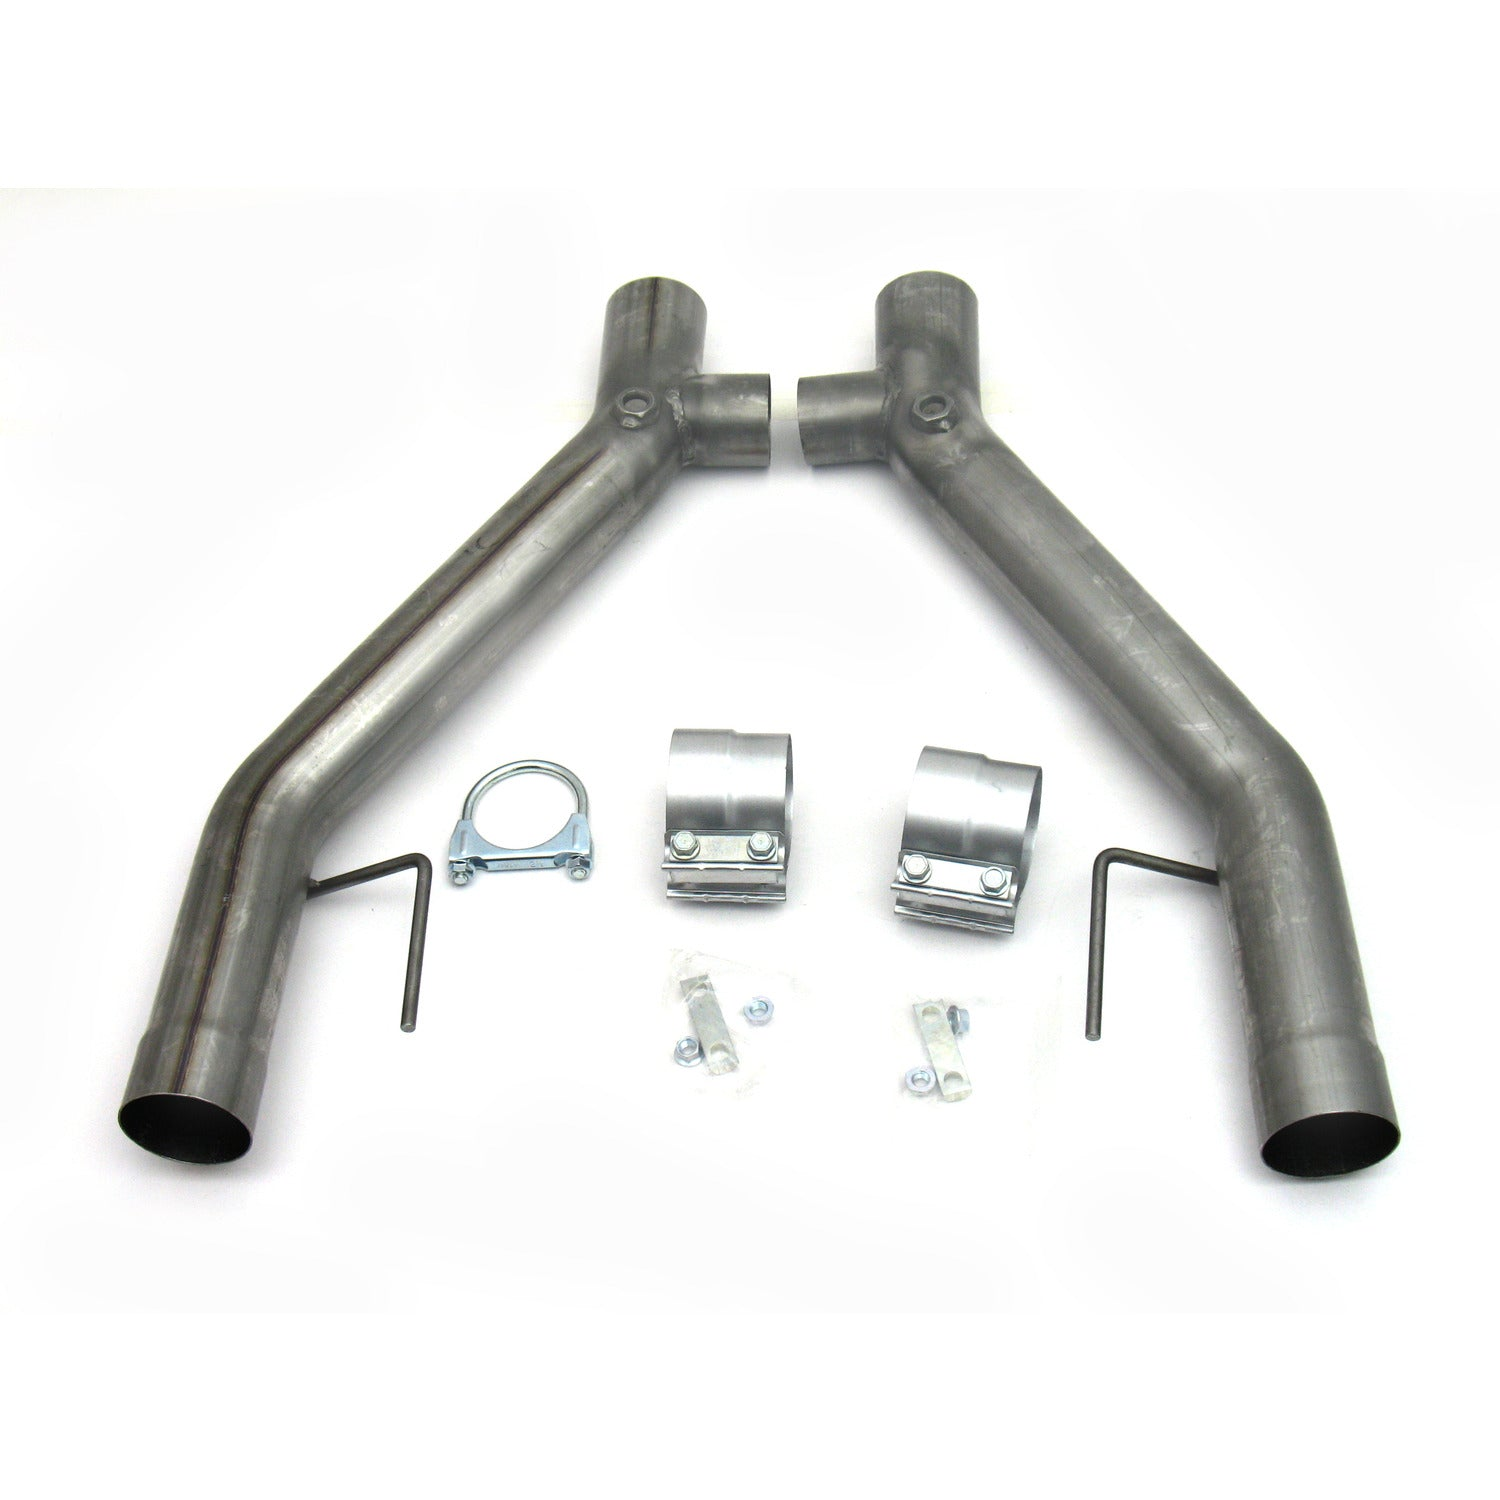 "JBA Performance Exhaust 6673SH 3"" Stainless Steel Mid-Pipe 2005-10 Mustang GT H-Pipe w/o cats for use with 6673 series Long Tube Headers"